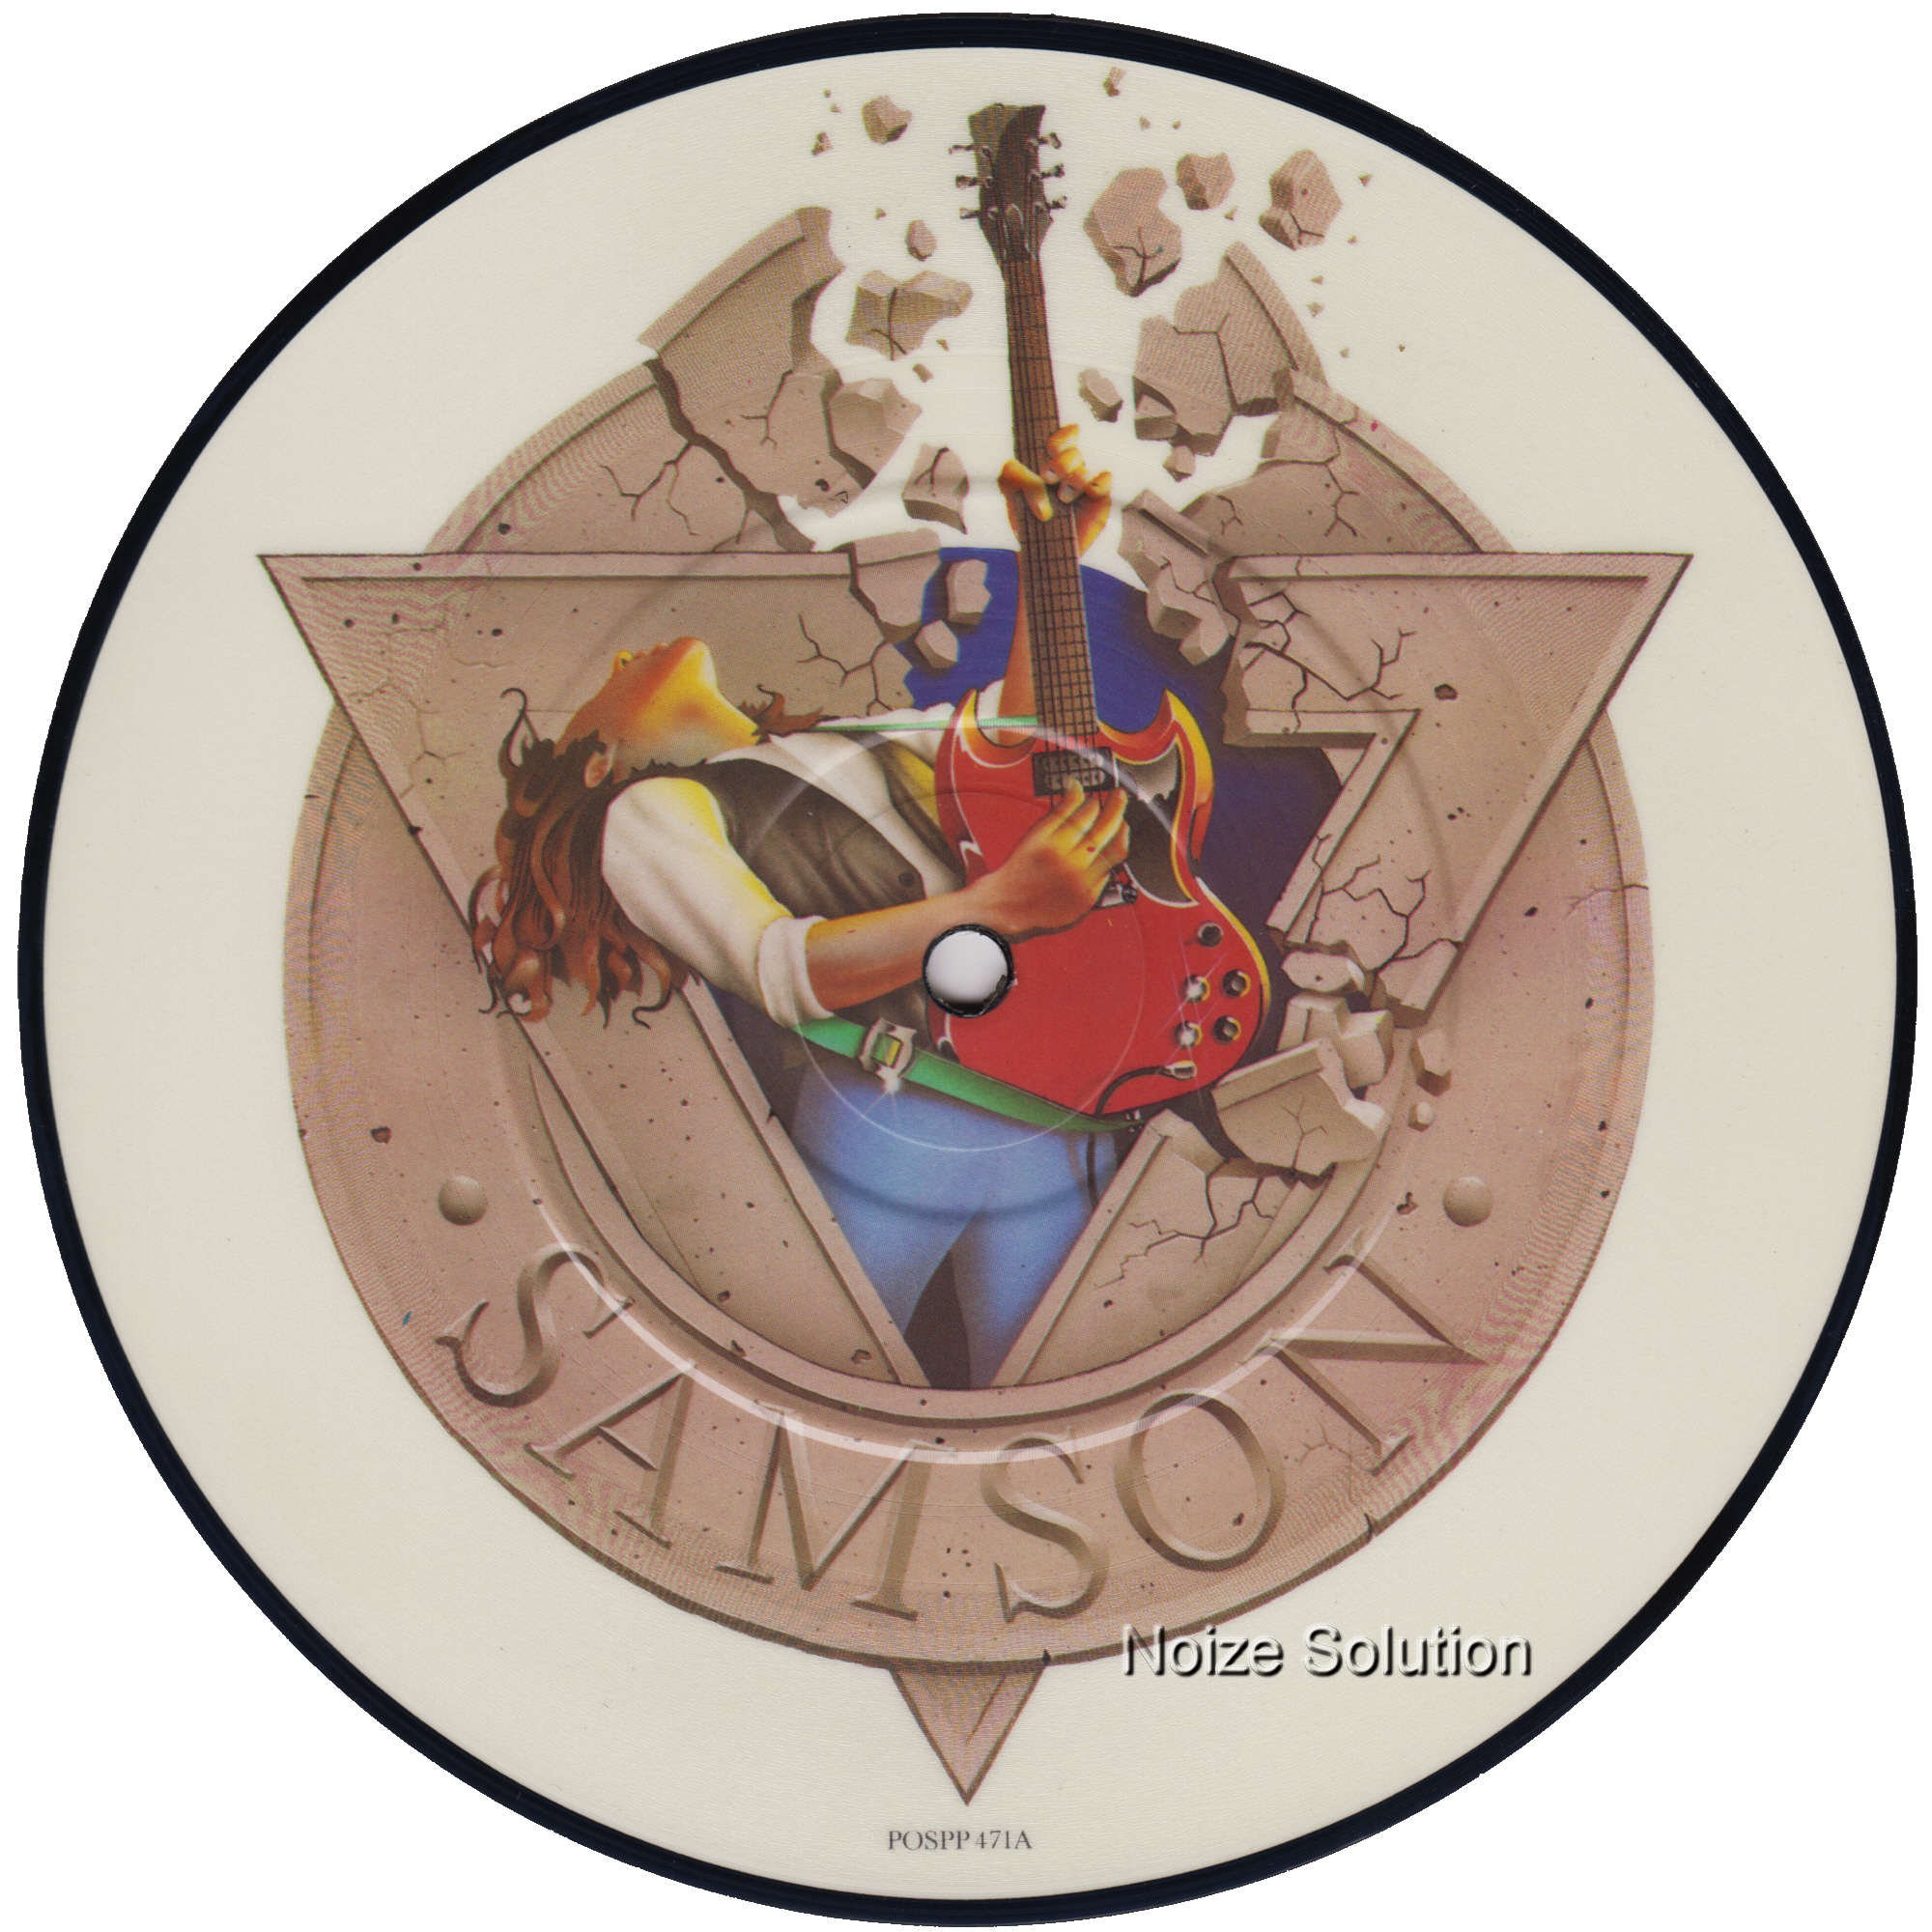 Samson - Losing My Grip 7 inch vinyl Picture Disc record Side 1